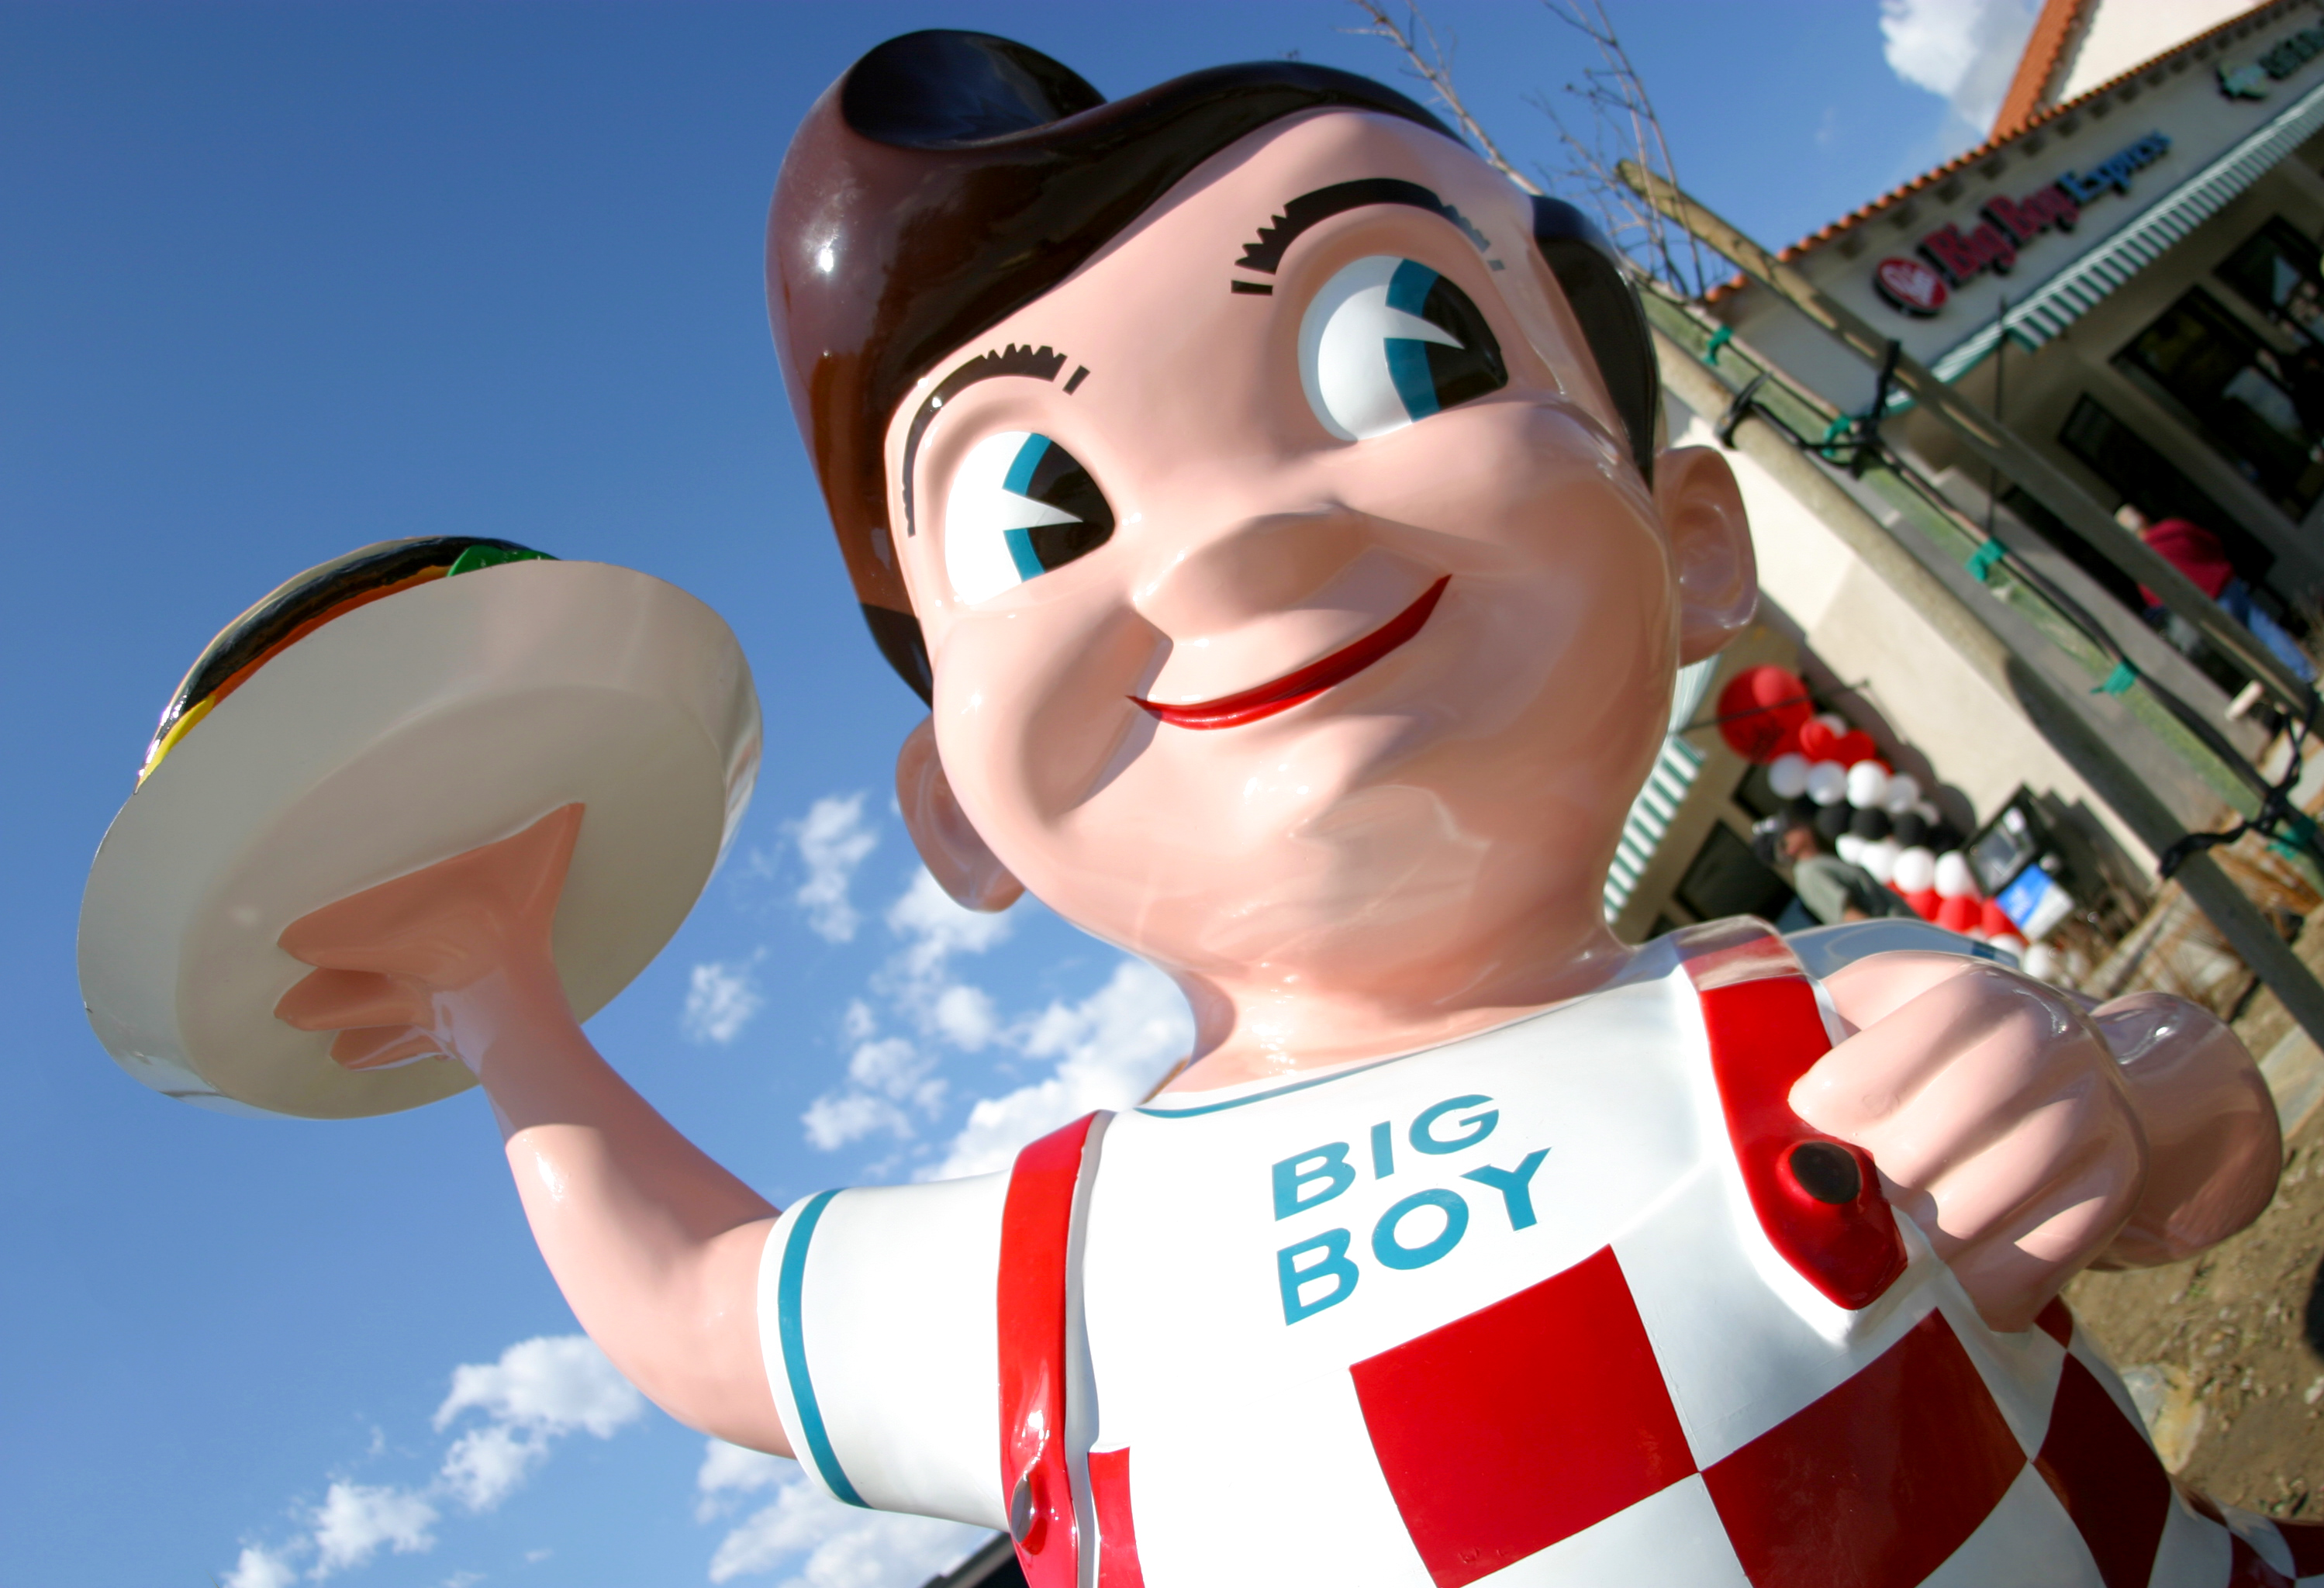 Family Restaurant Chain Big Boy Is Plotting an Unlikely Comeback